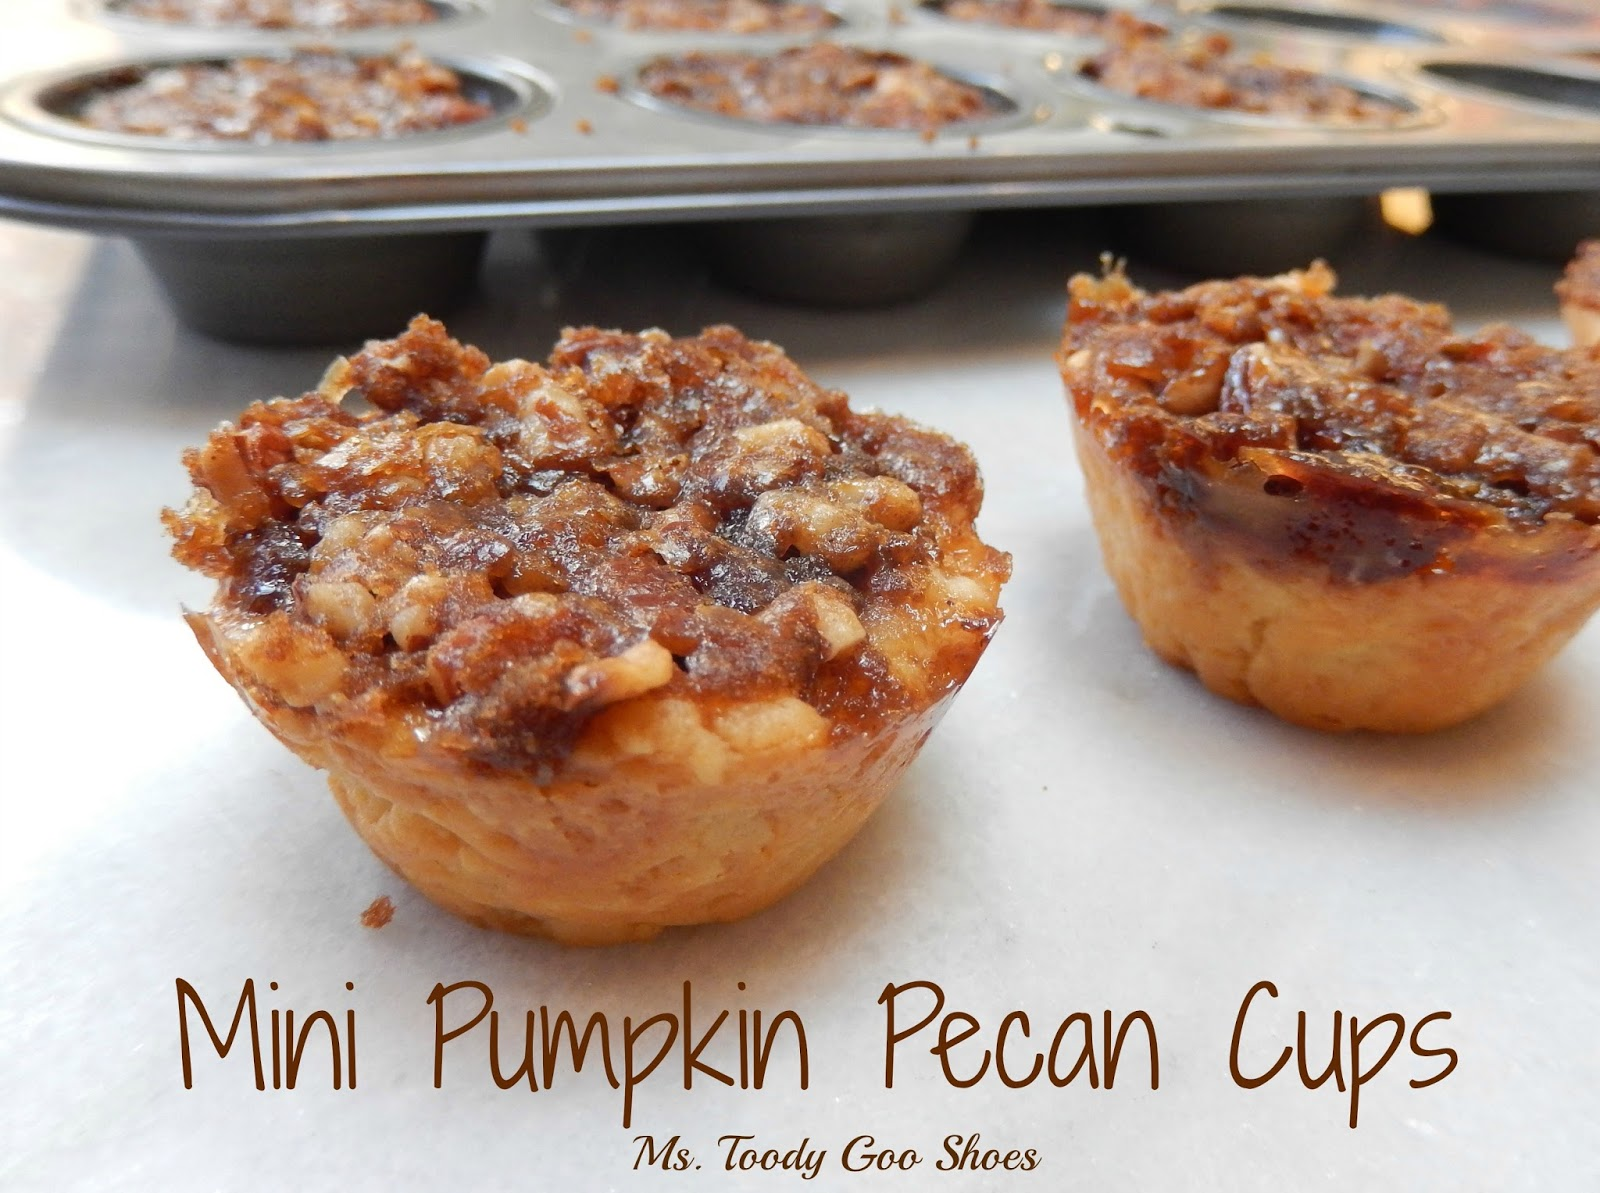 Mini Pumpkin Pecan Cups  by Ms. Toody Goo Shoes